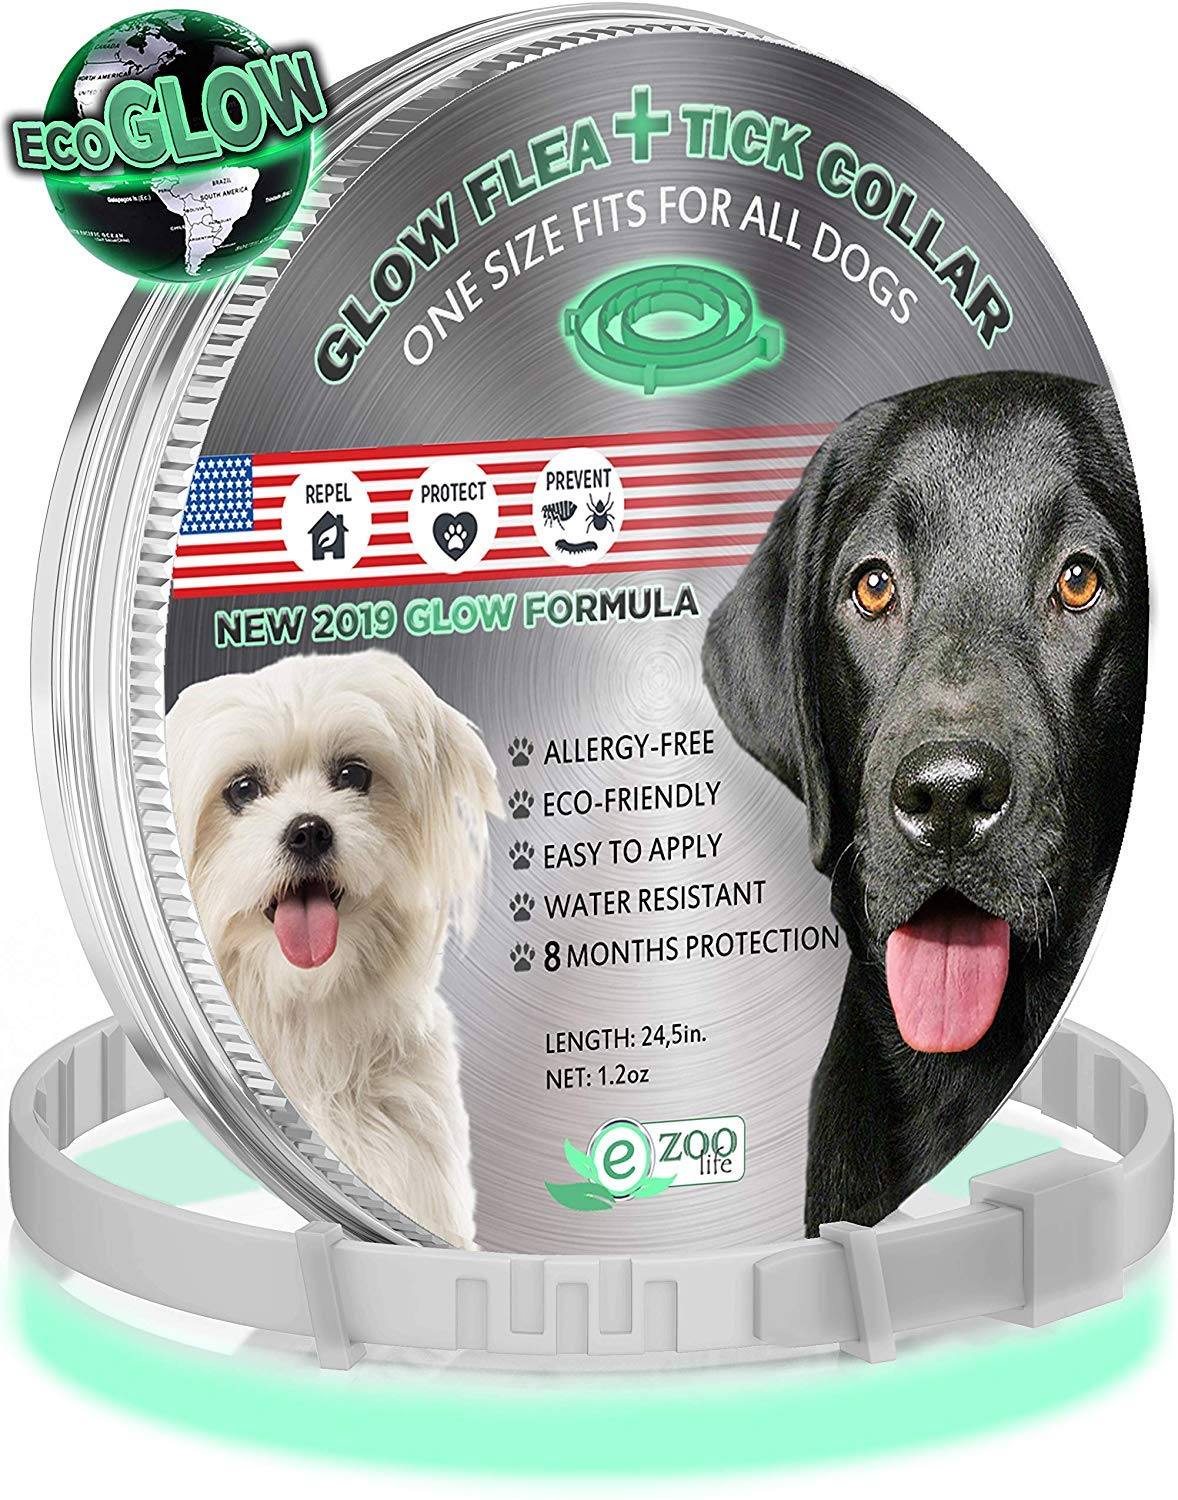 еZOOlife Glow ECO Pest Control Collar: Hypoallergenic Waterproof Protection Long Lasting Flea and Tick Prevention Fully Adjustable one Size fits All 81G6Q0n52HL